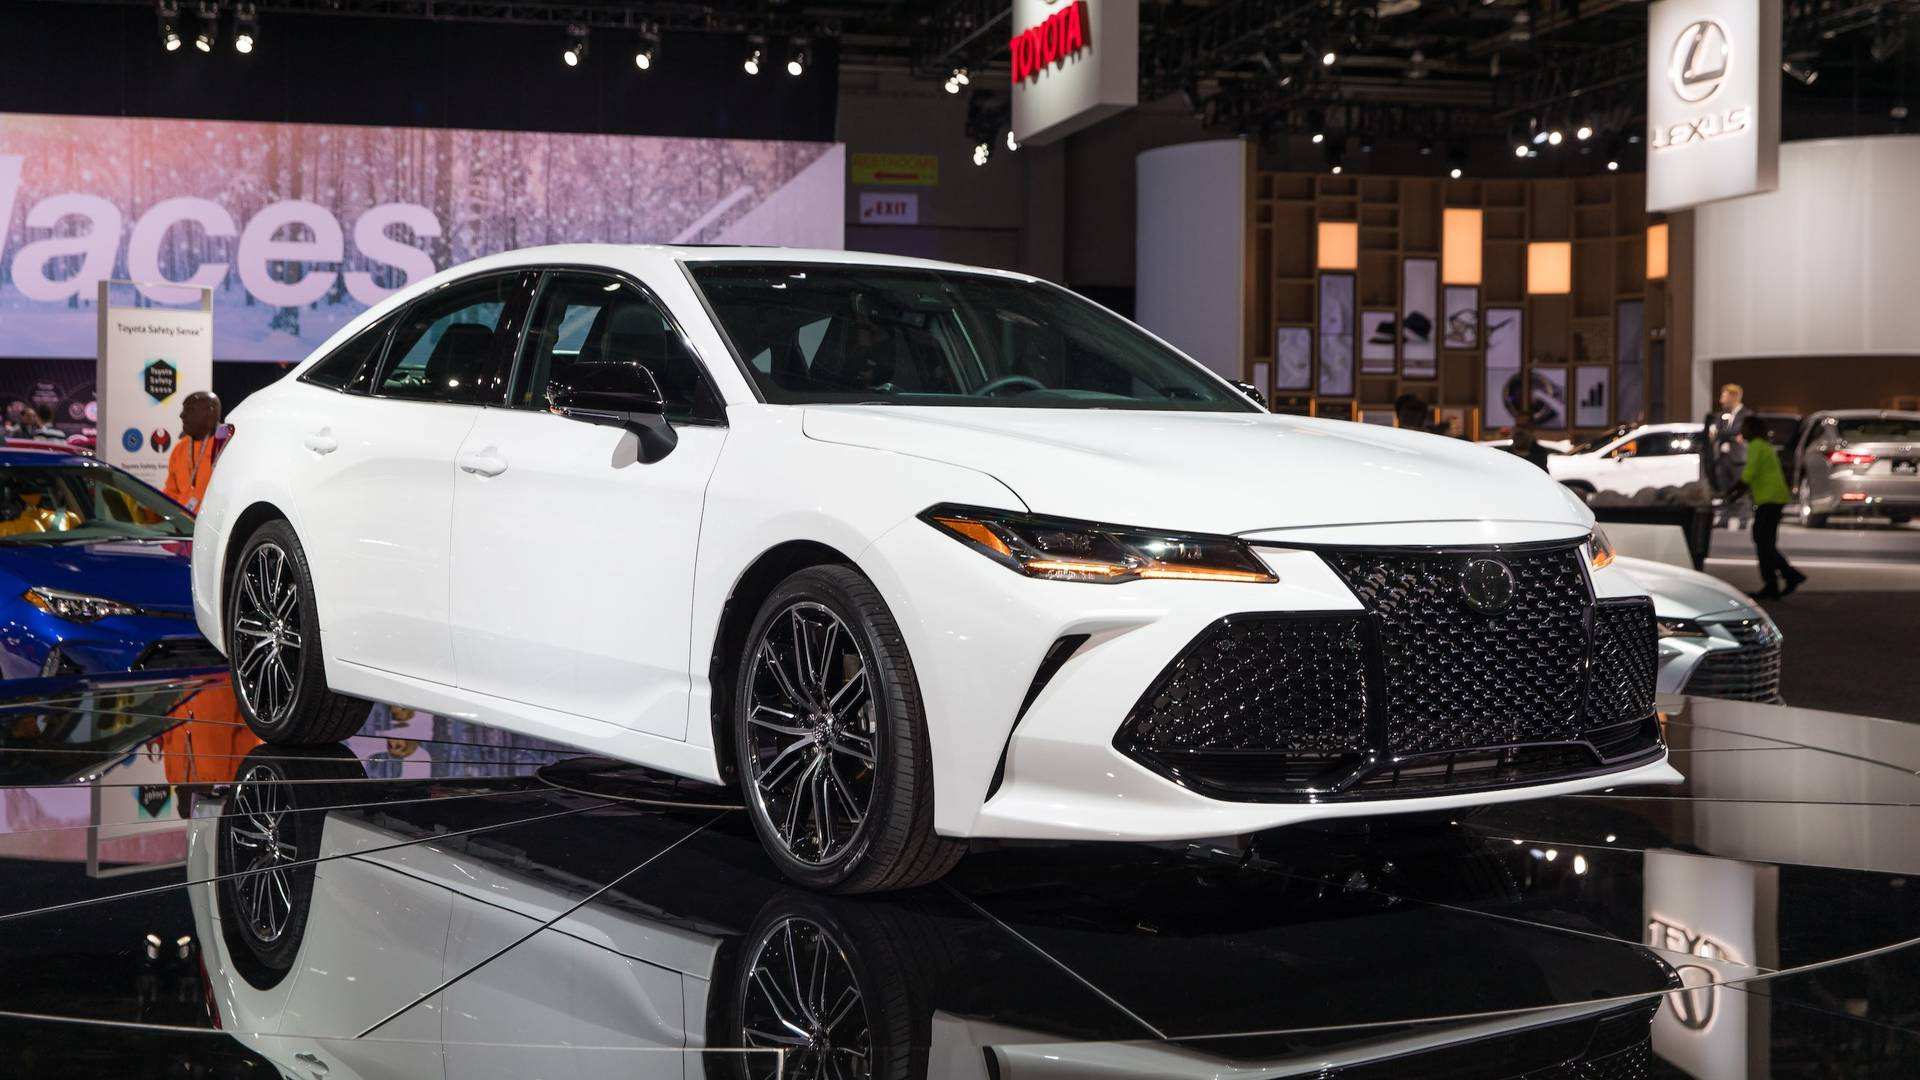 55 Great 2019 Toyota Avalon Xse Ratings for 2019 Toyota Avalon Xse